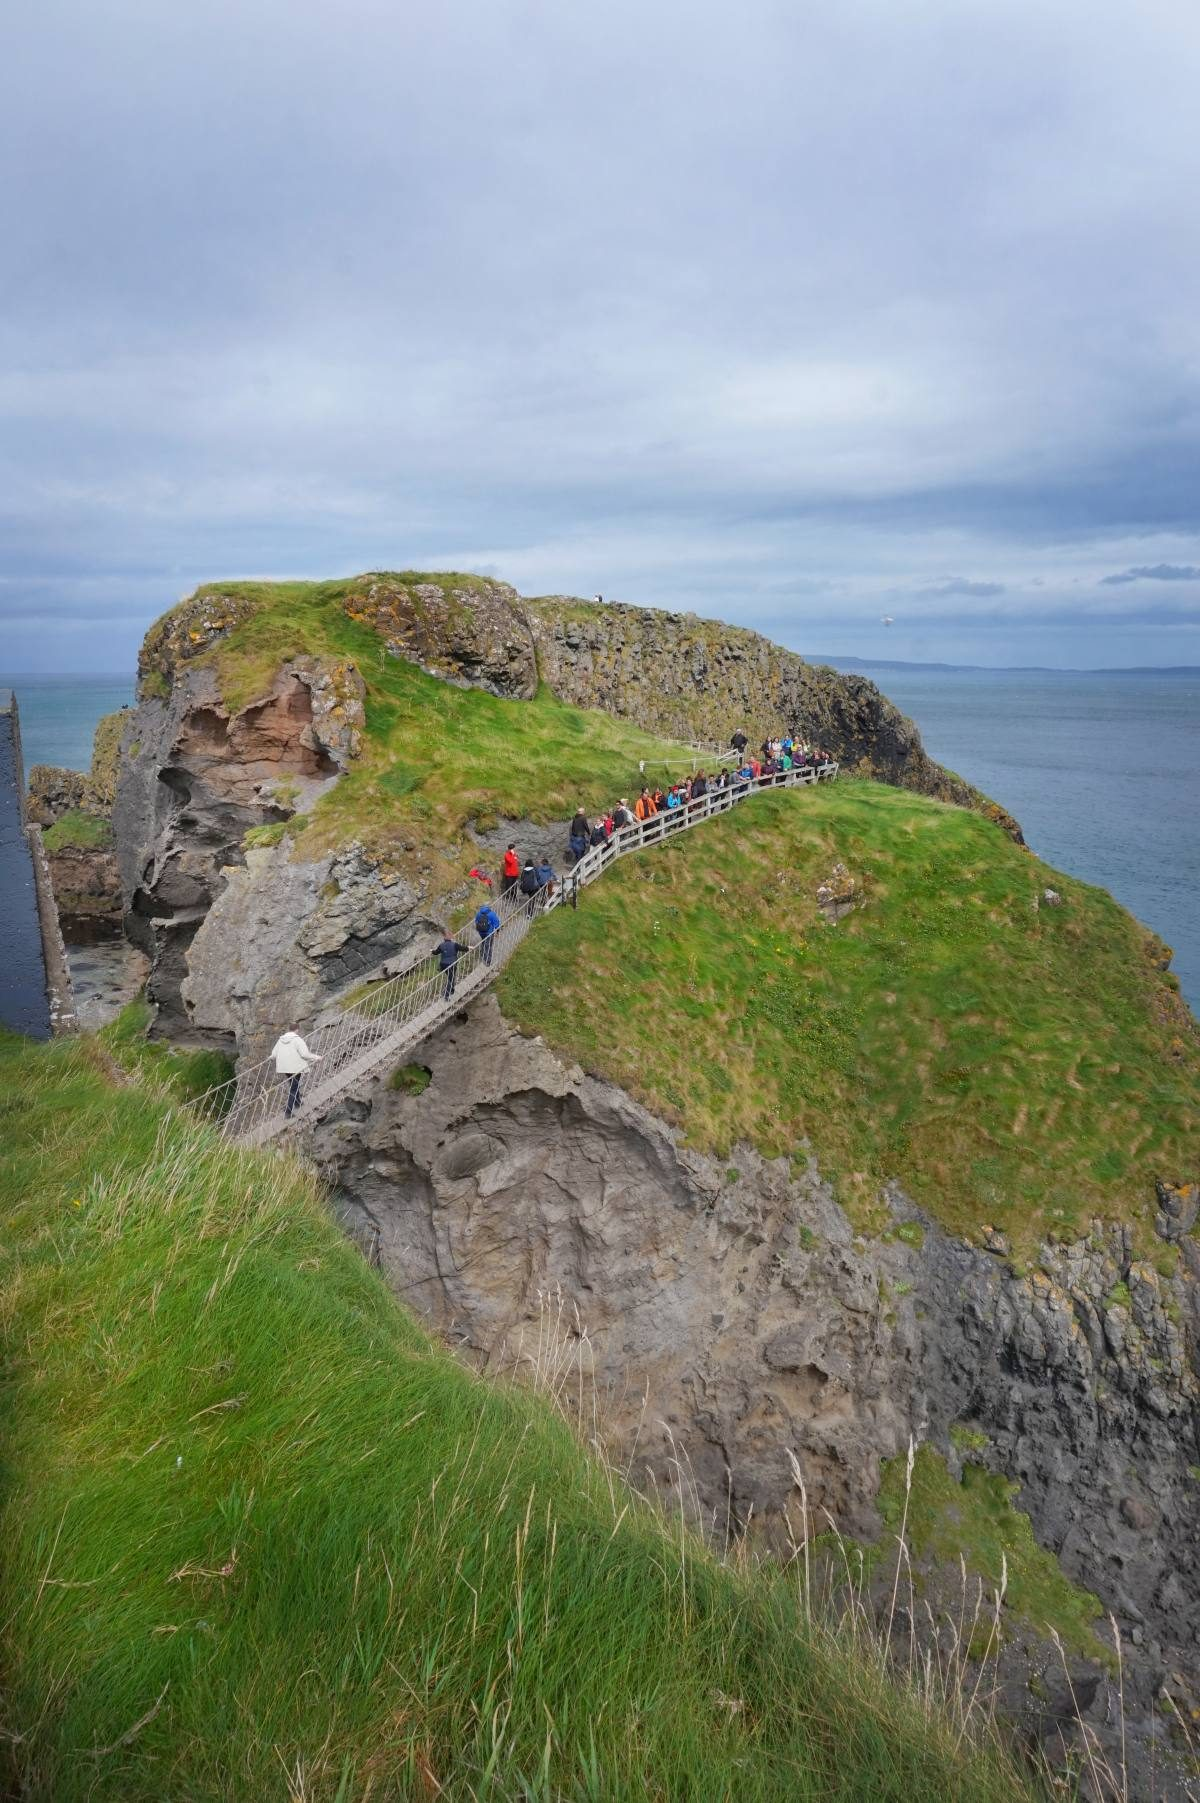 Carrick-a-Rede Bridge